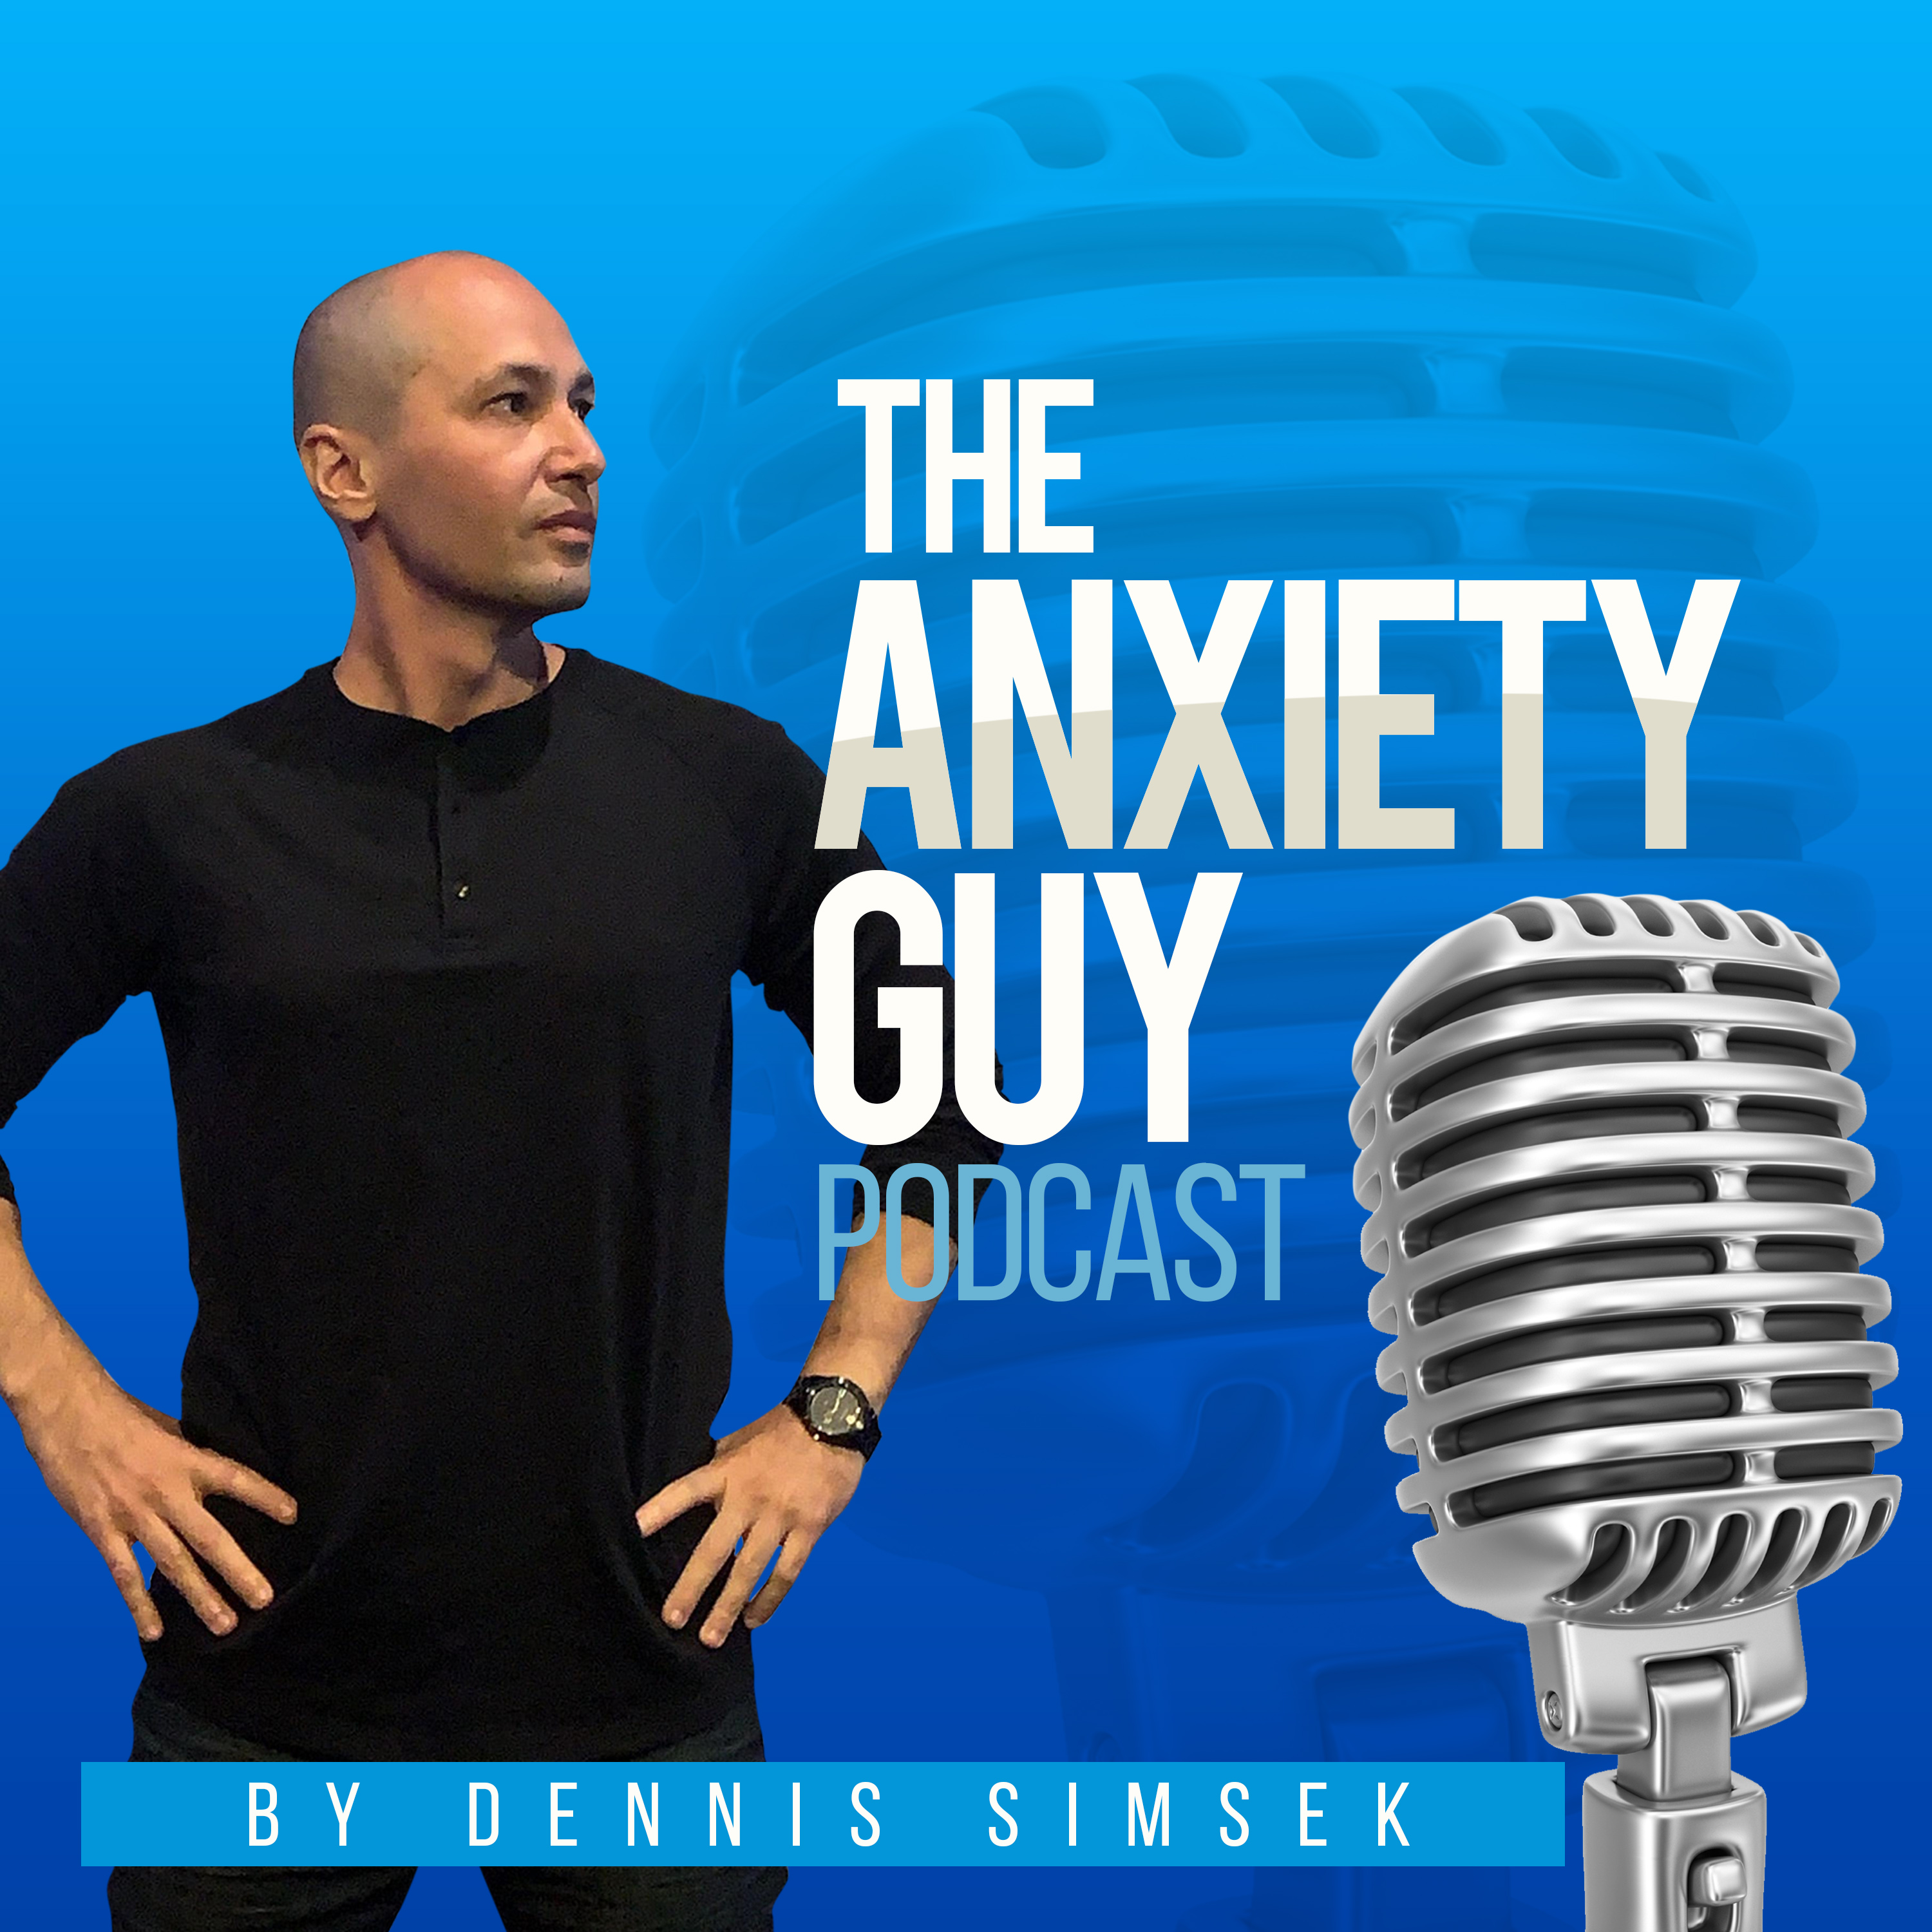 a podcast dedicated to finding the answers to healing anxiety